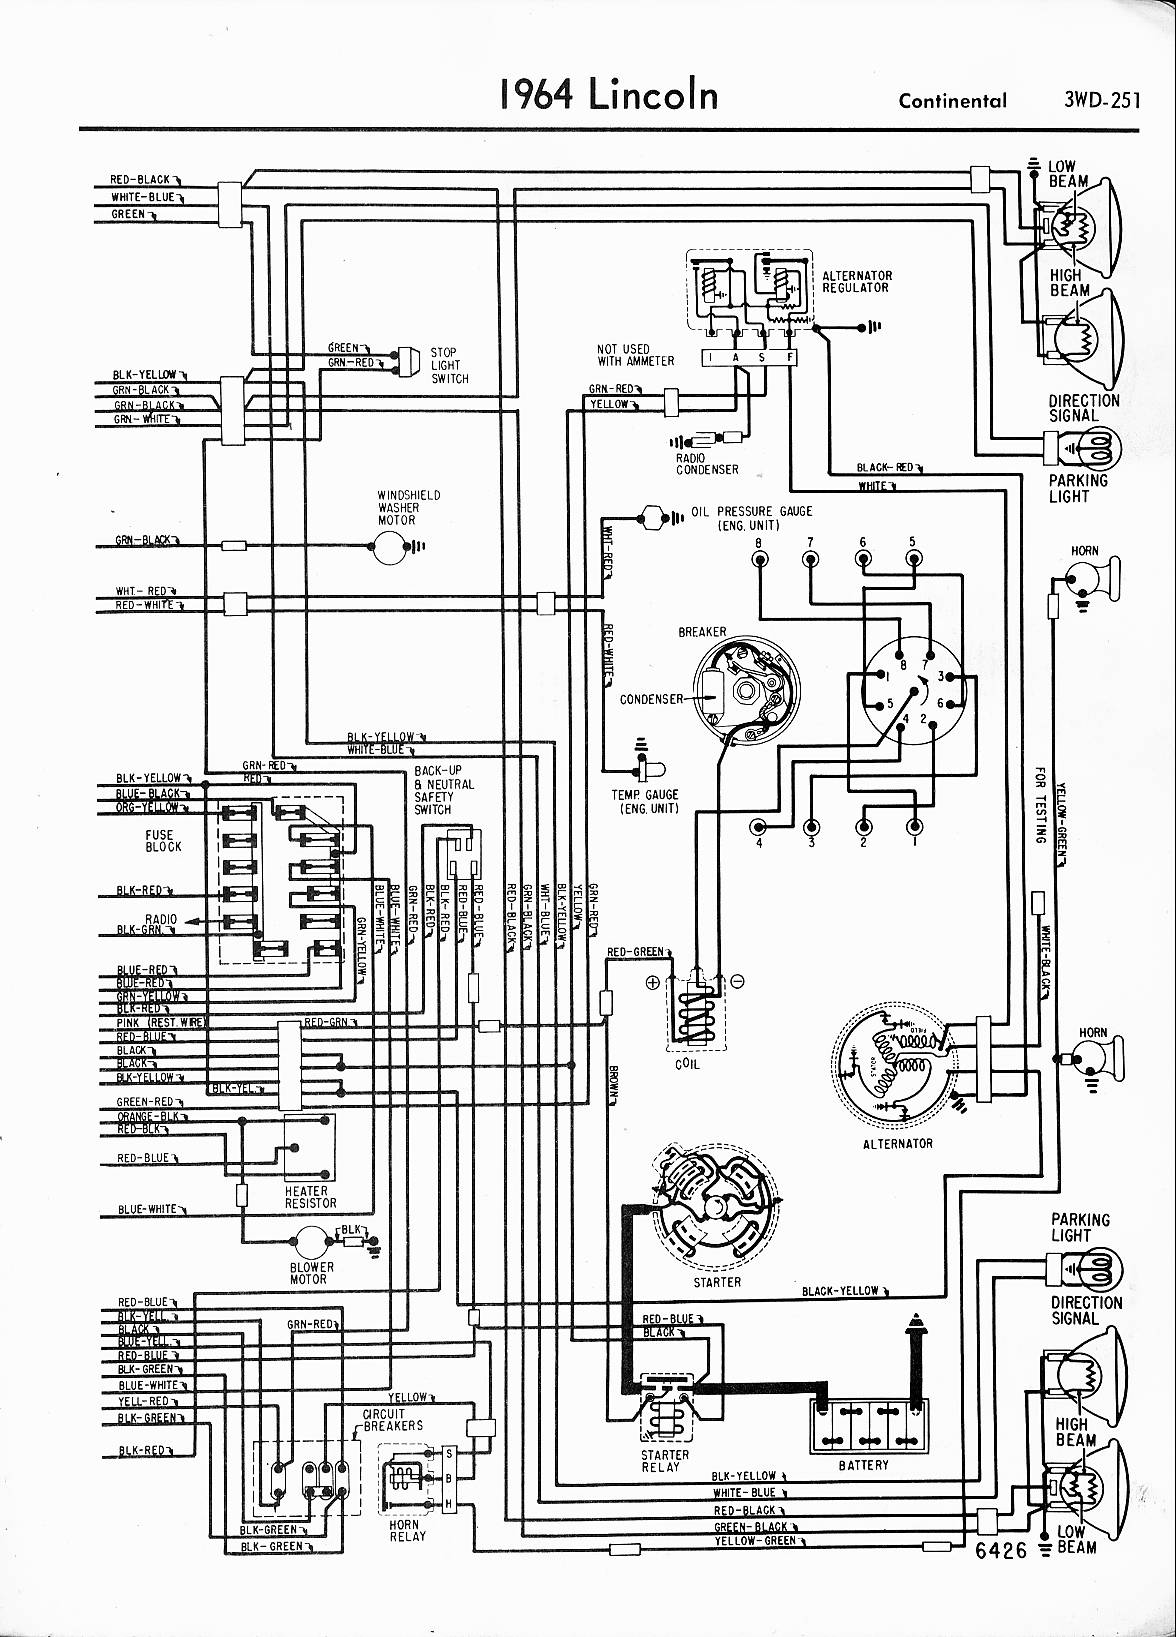 1963 Lincoln ke Light Wiring | Wiring Diagram on